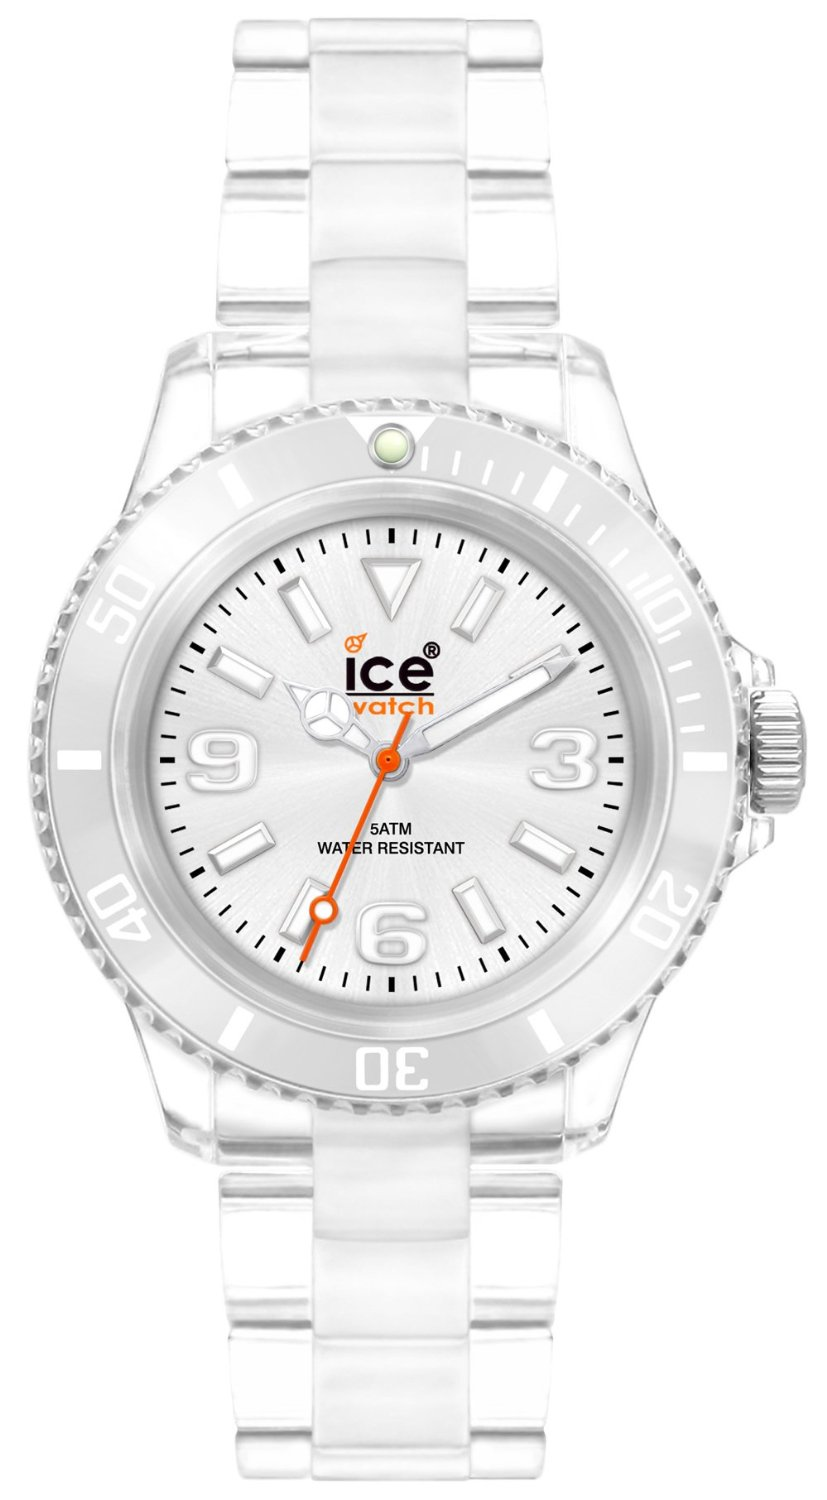 buy online 0ff0f 30c78 アイス 時計 Ice-Watch Womens CL.SR.S.P.09 Classic Collection Silver Dial Clear  Plastic Watch - 輸入時計専門店 ショップ タイムズ 通販